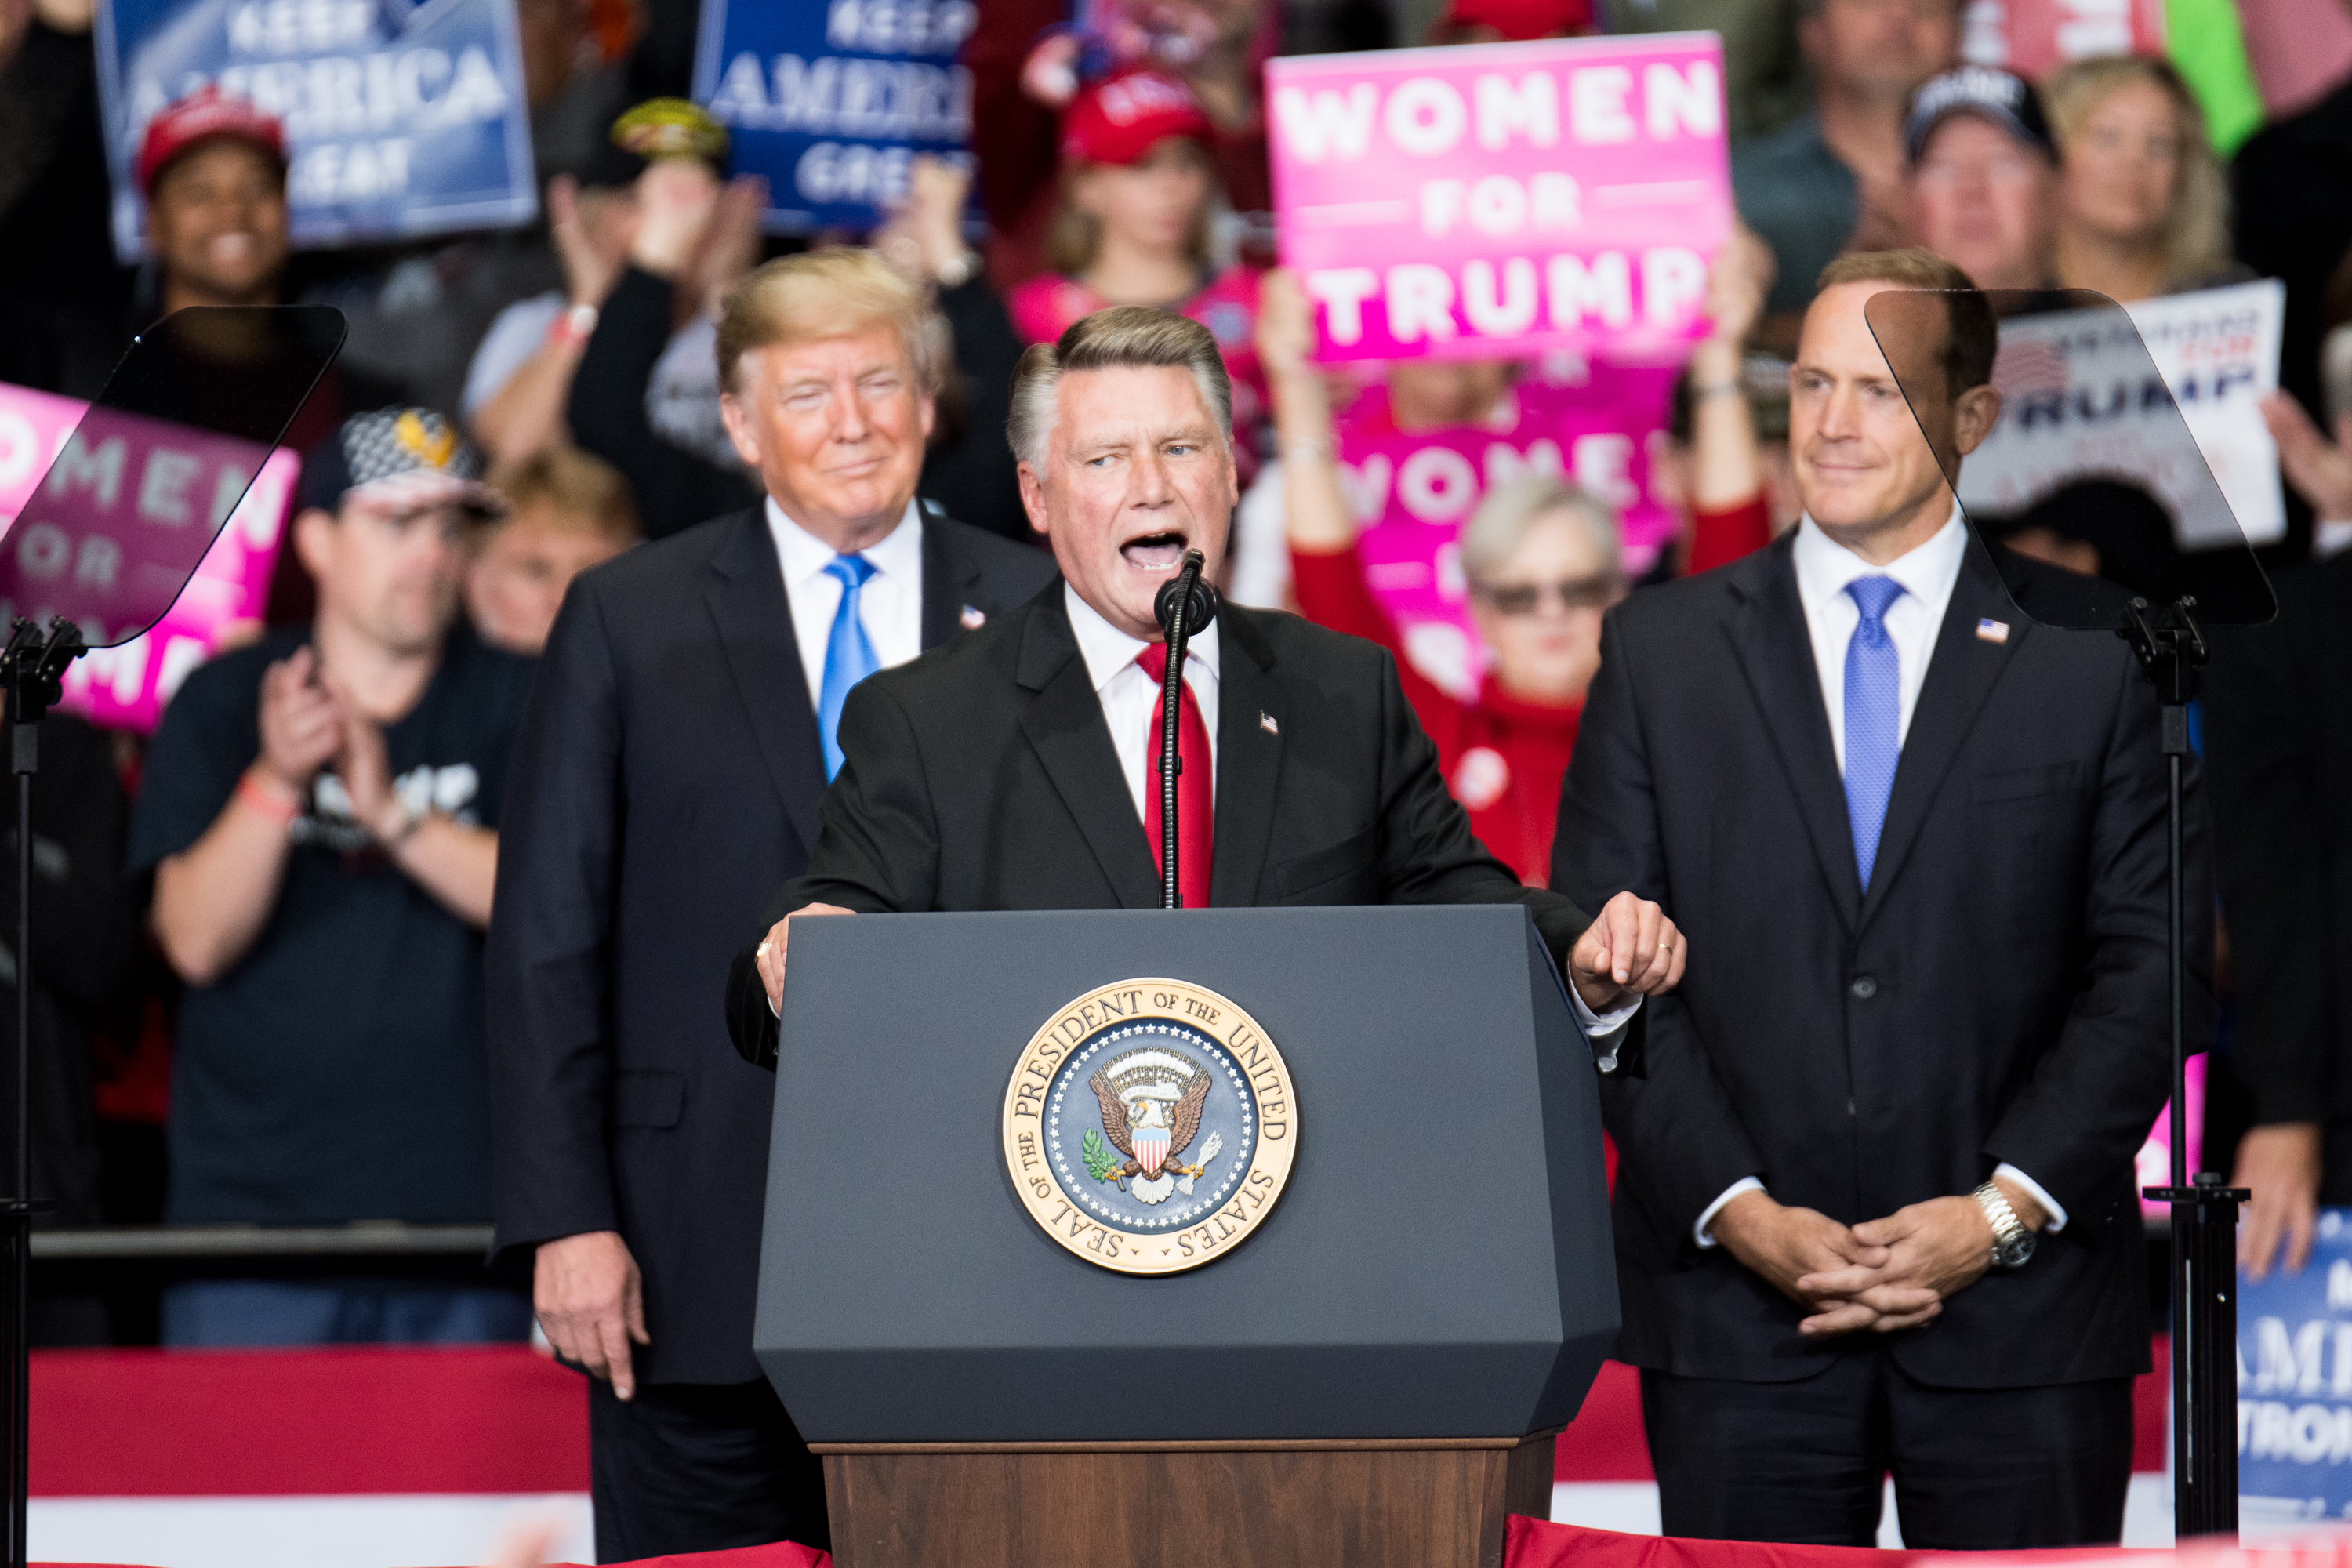 Republican Congressional candidate for North Carolina's 9th district Mark Harris (C), addresses the crowd as President Donald Trump (L) and Republican Congressional candidate for North Carolina's 13th district Ted Budd (R), listen at the Bojangles Coliseum on October 26, 2018 in Charlotte, North Carolina. (Photo by Sean Rayford/Getty Images)